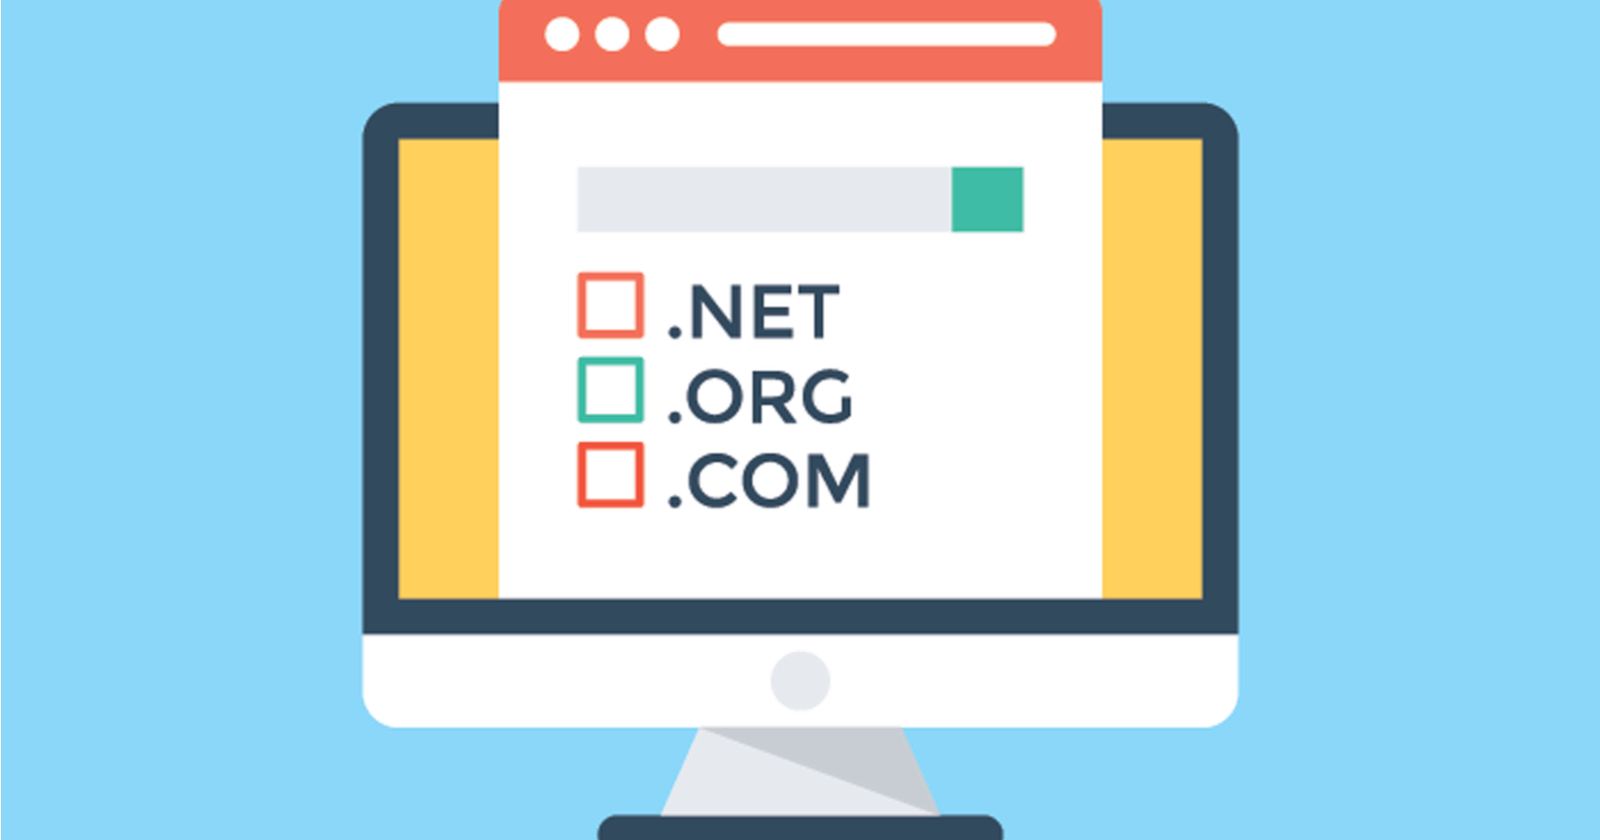 decide a good domain name